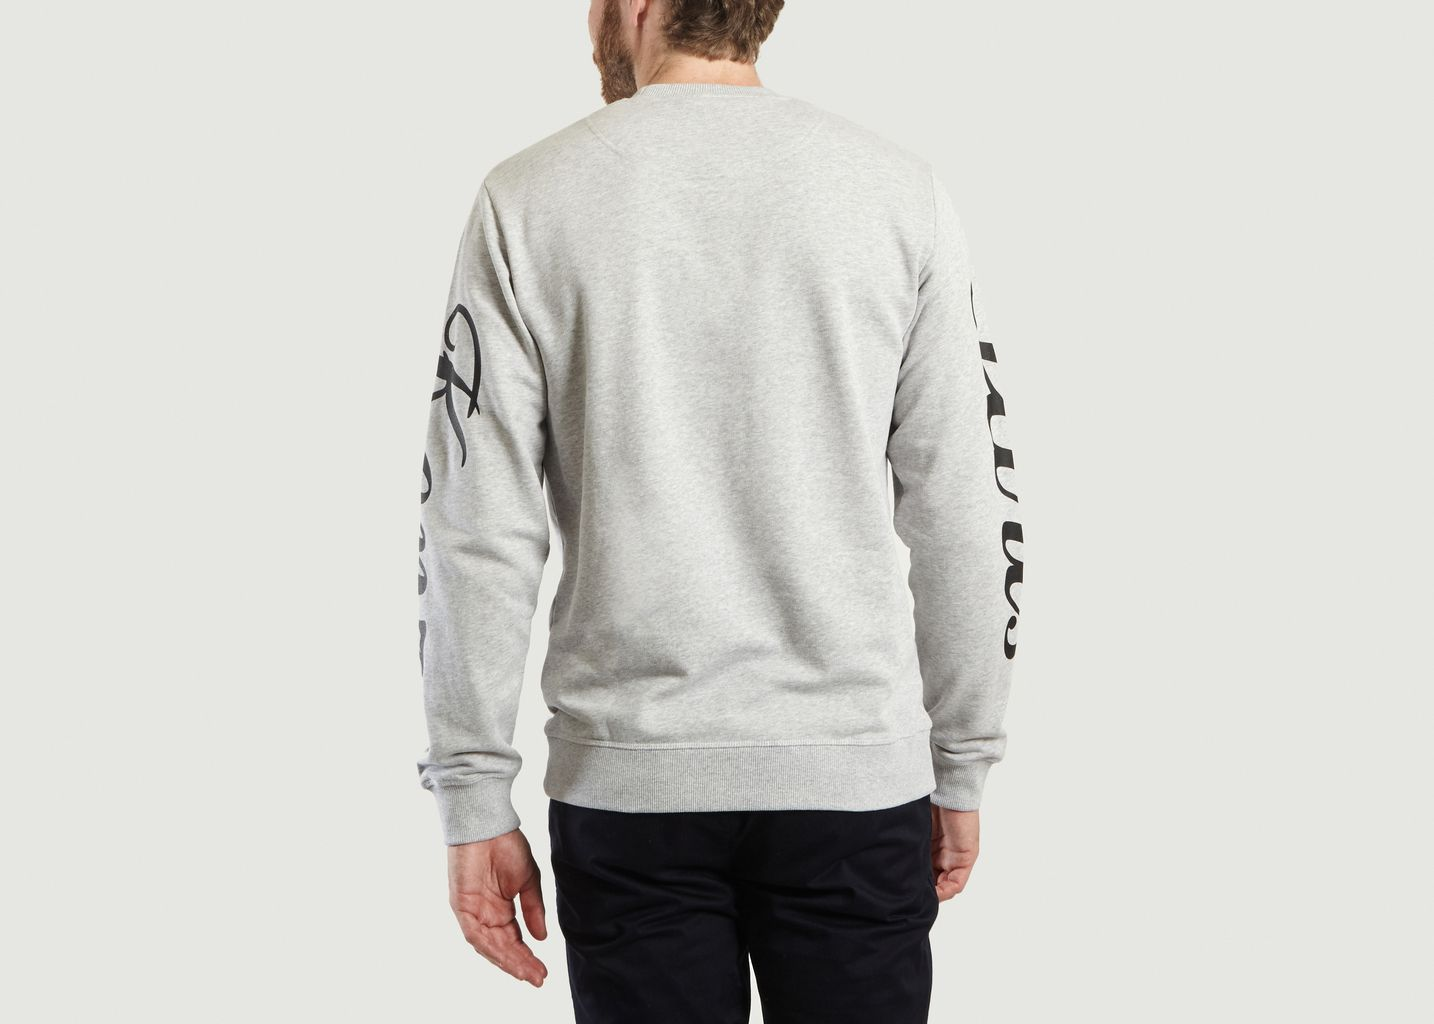 Sale Jumping Tiger Sweatshirt Light Grey Kenzo at -50%   L Exception 1ff36708a91